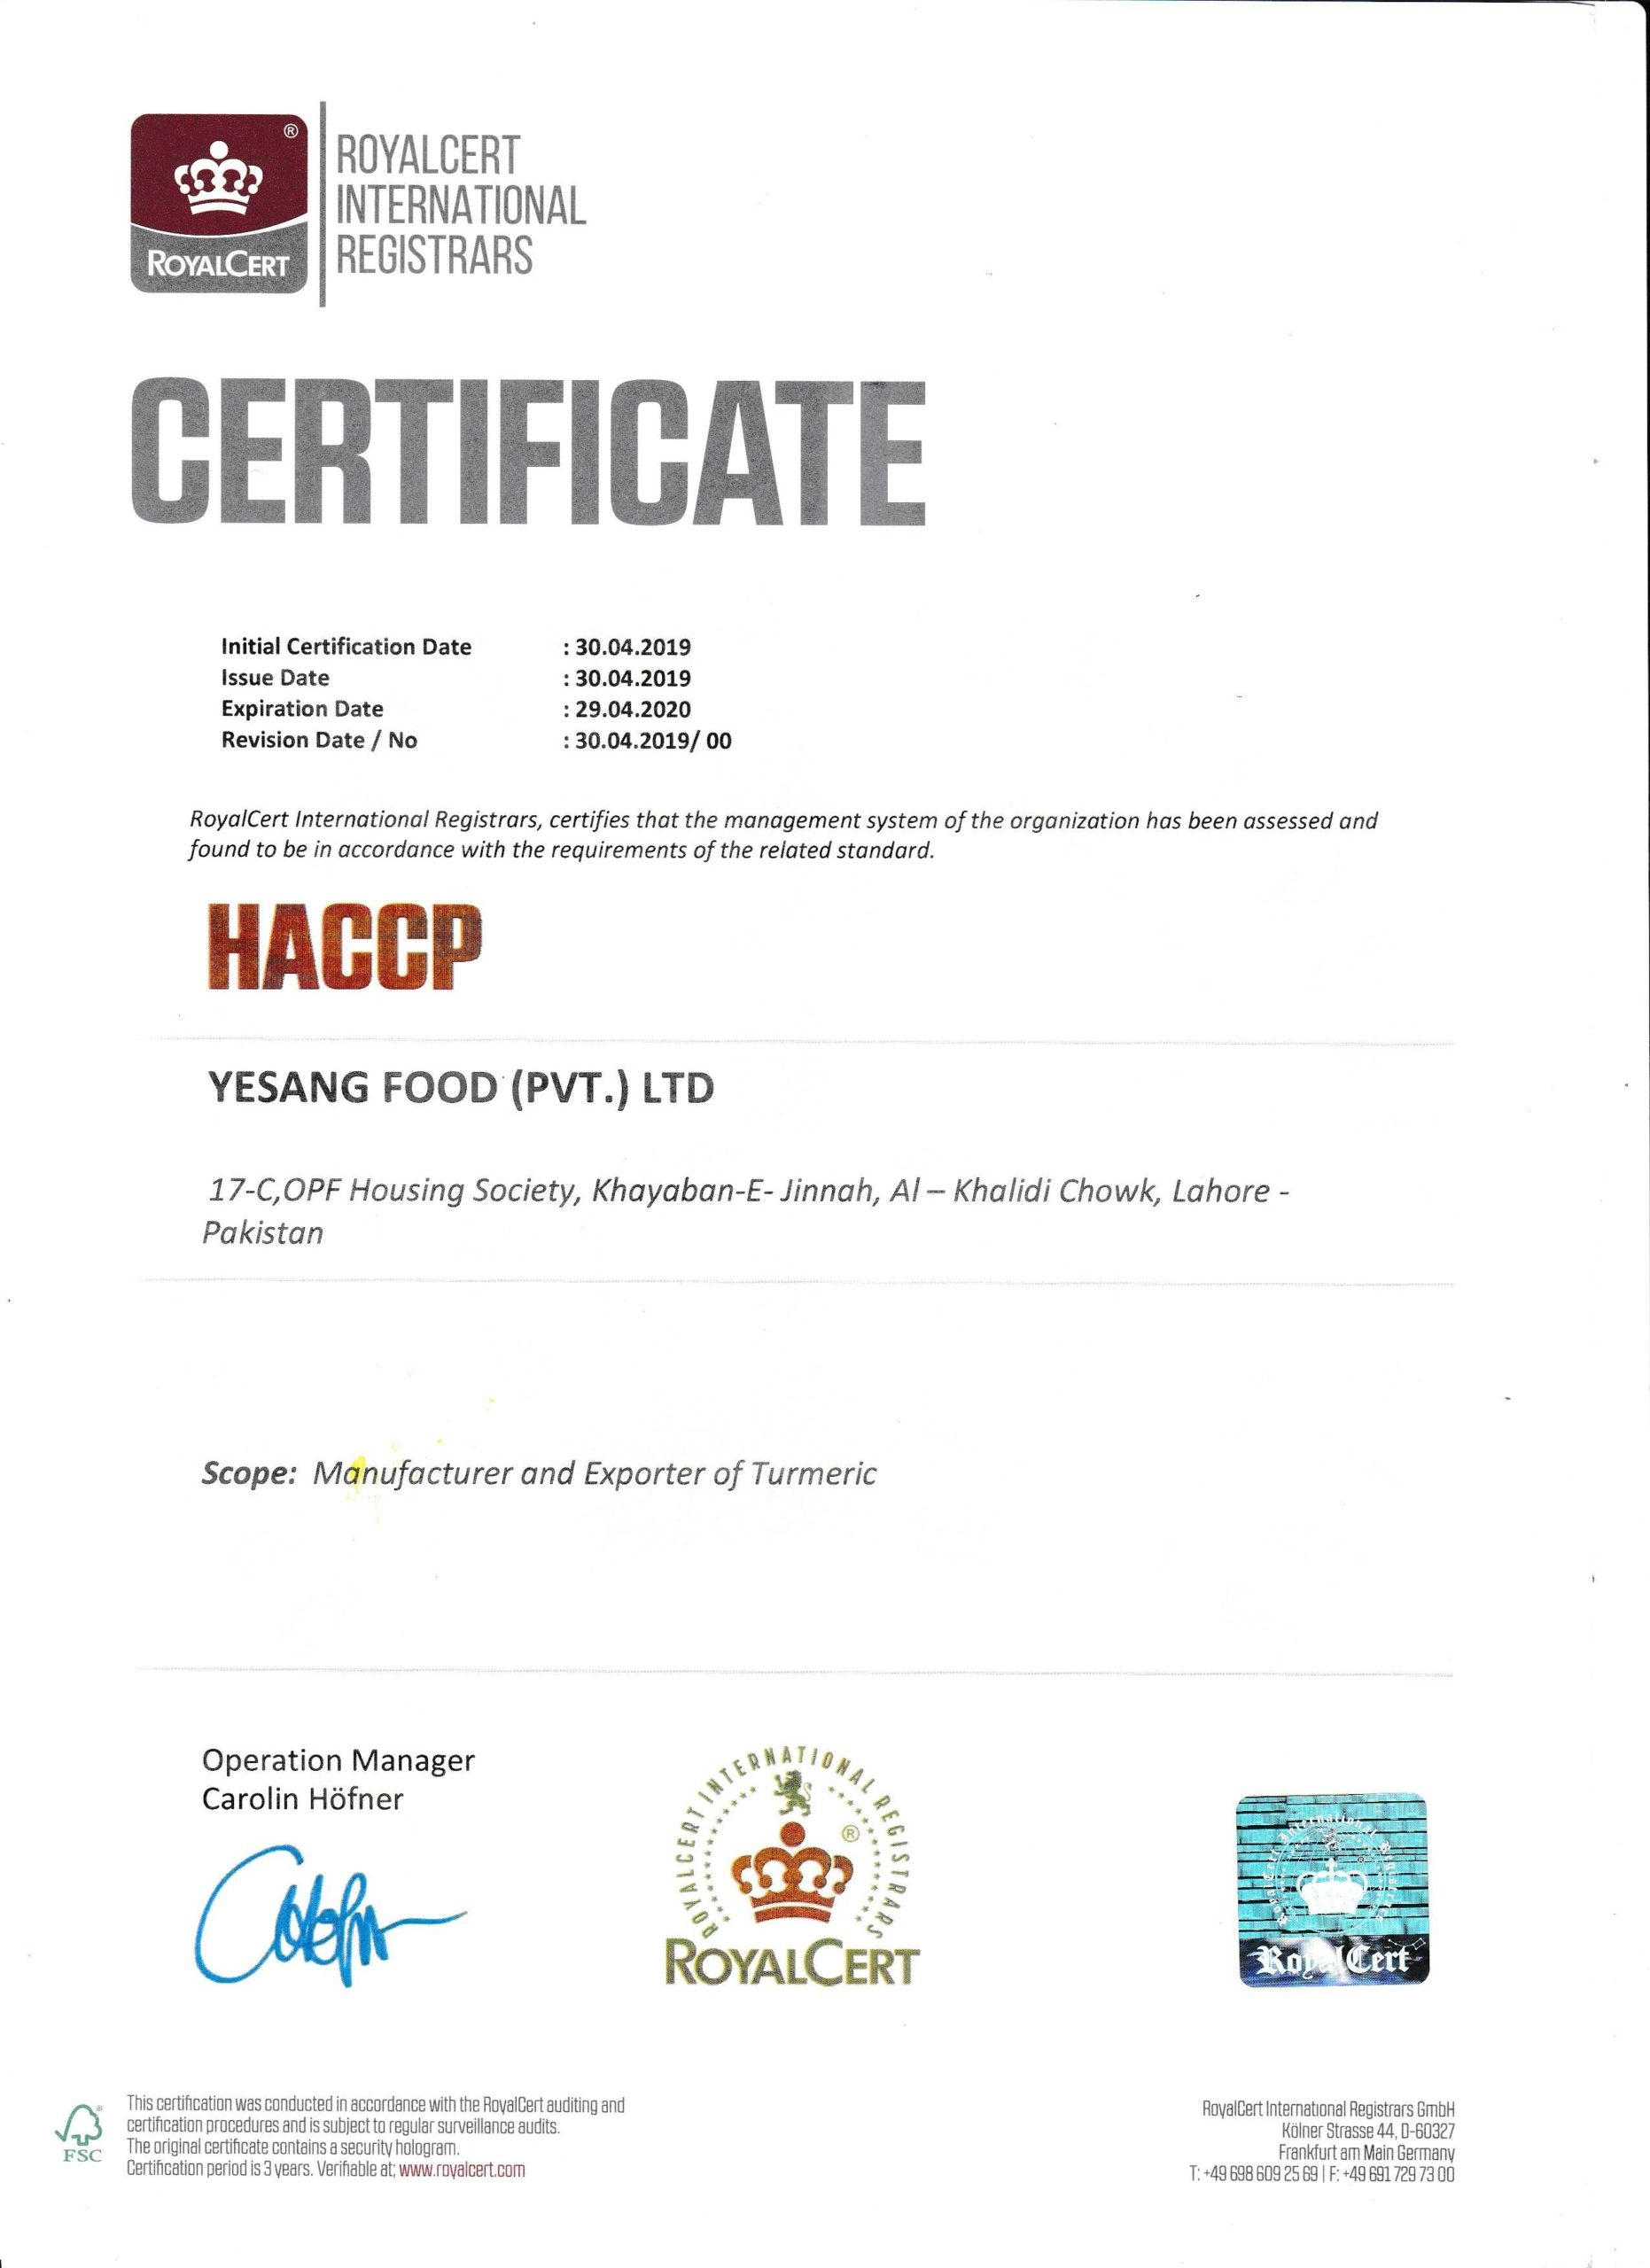 HACCP Certification - Yesang Food Korea